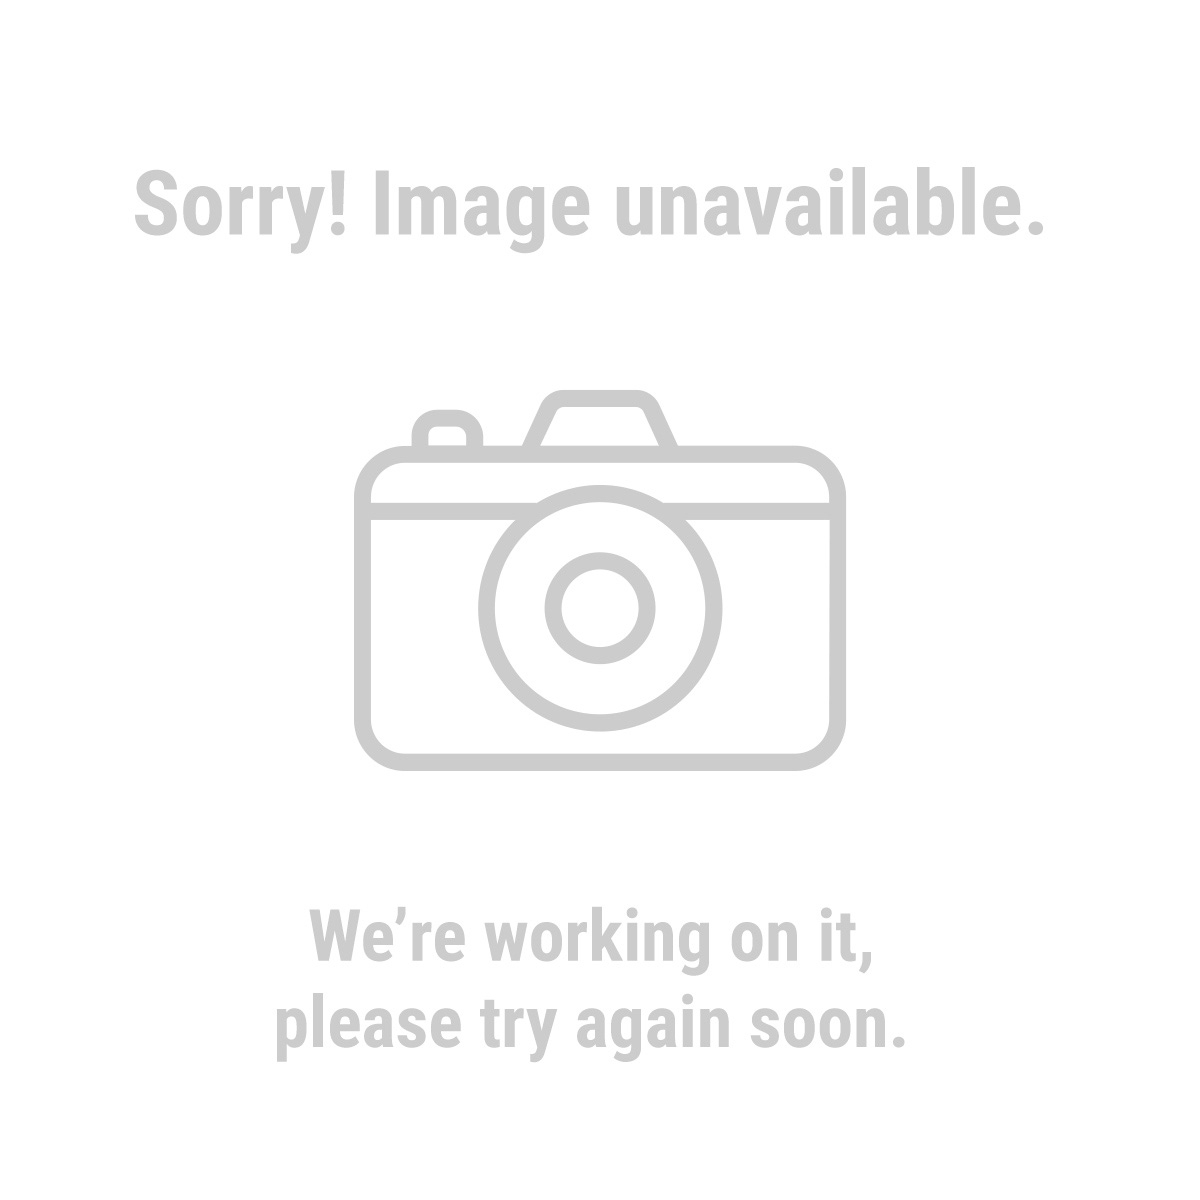 Western Safety 95542 Leather Mechanic's Gloves, X-Large